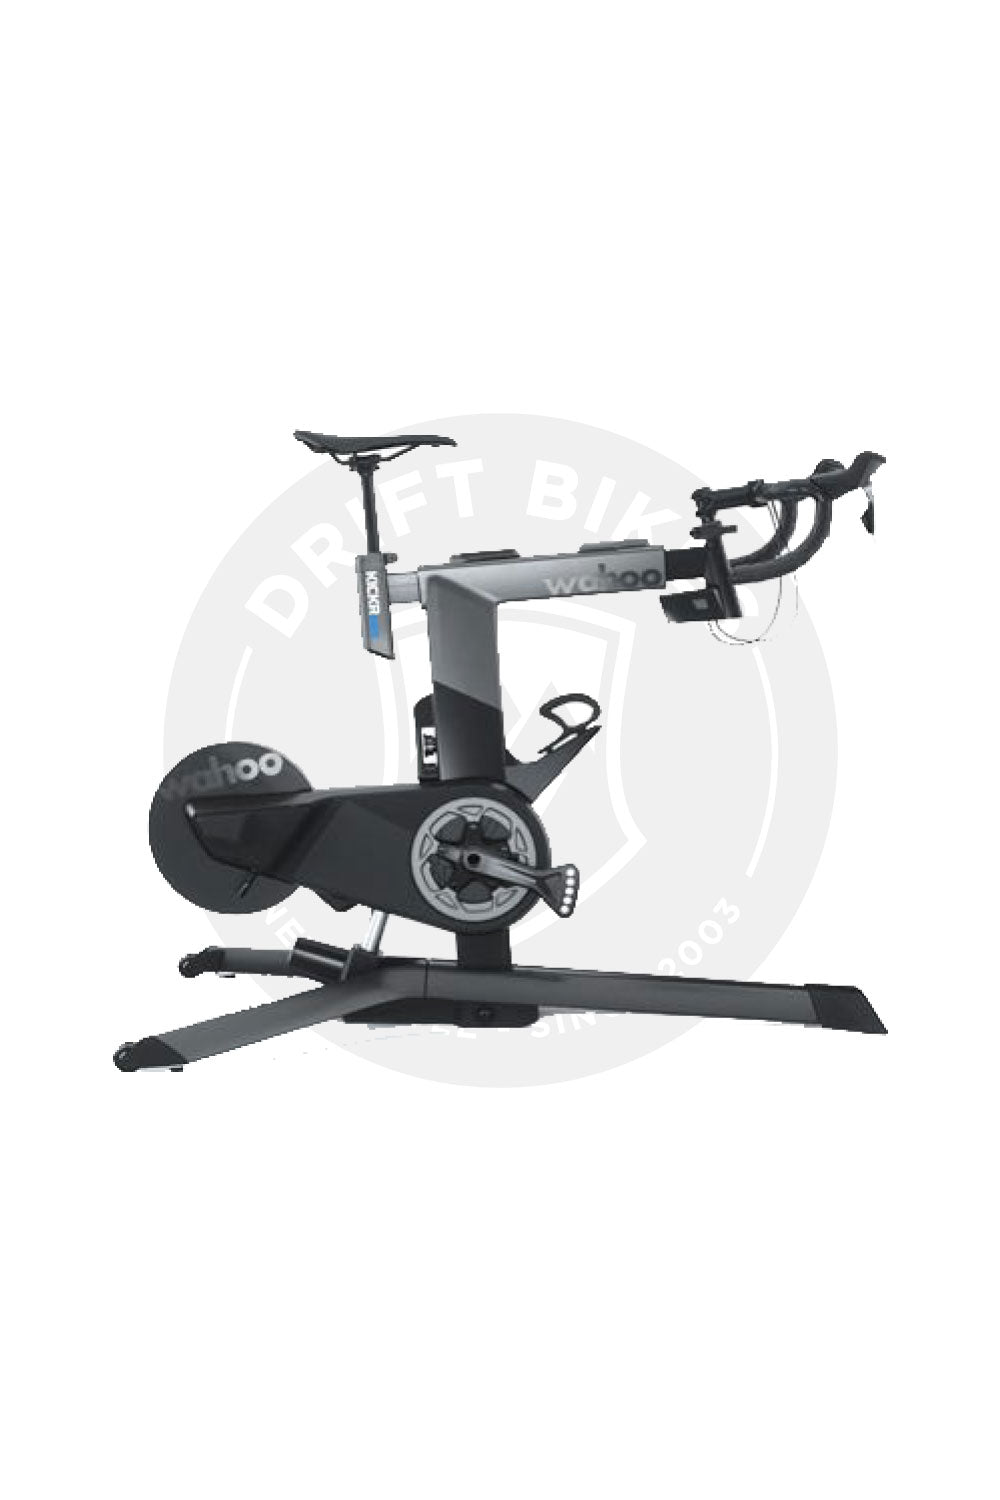 WAHOO Kickr Indoor Training Bike